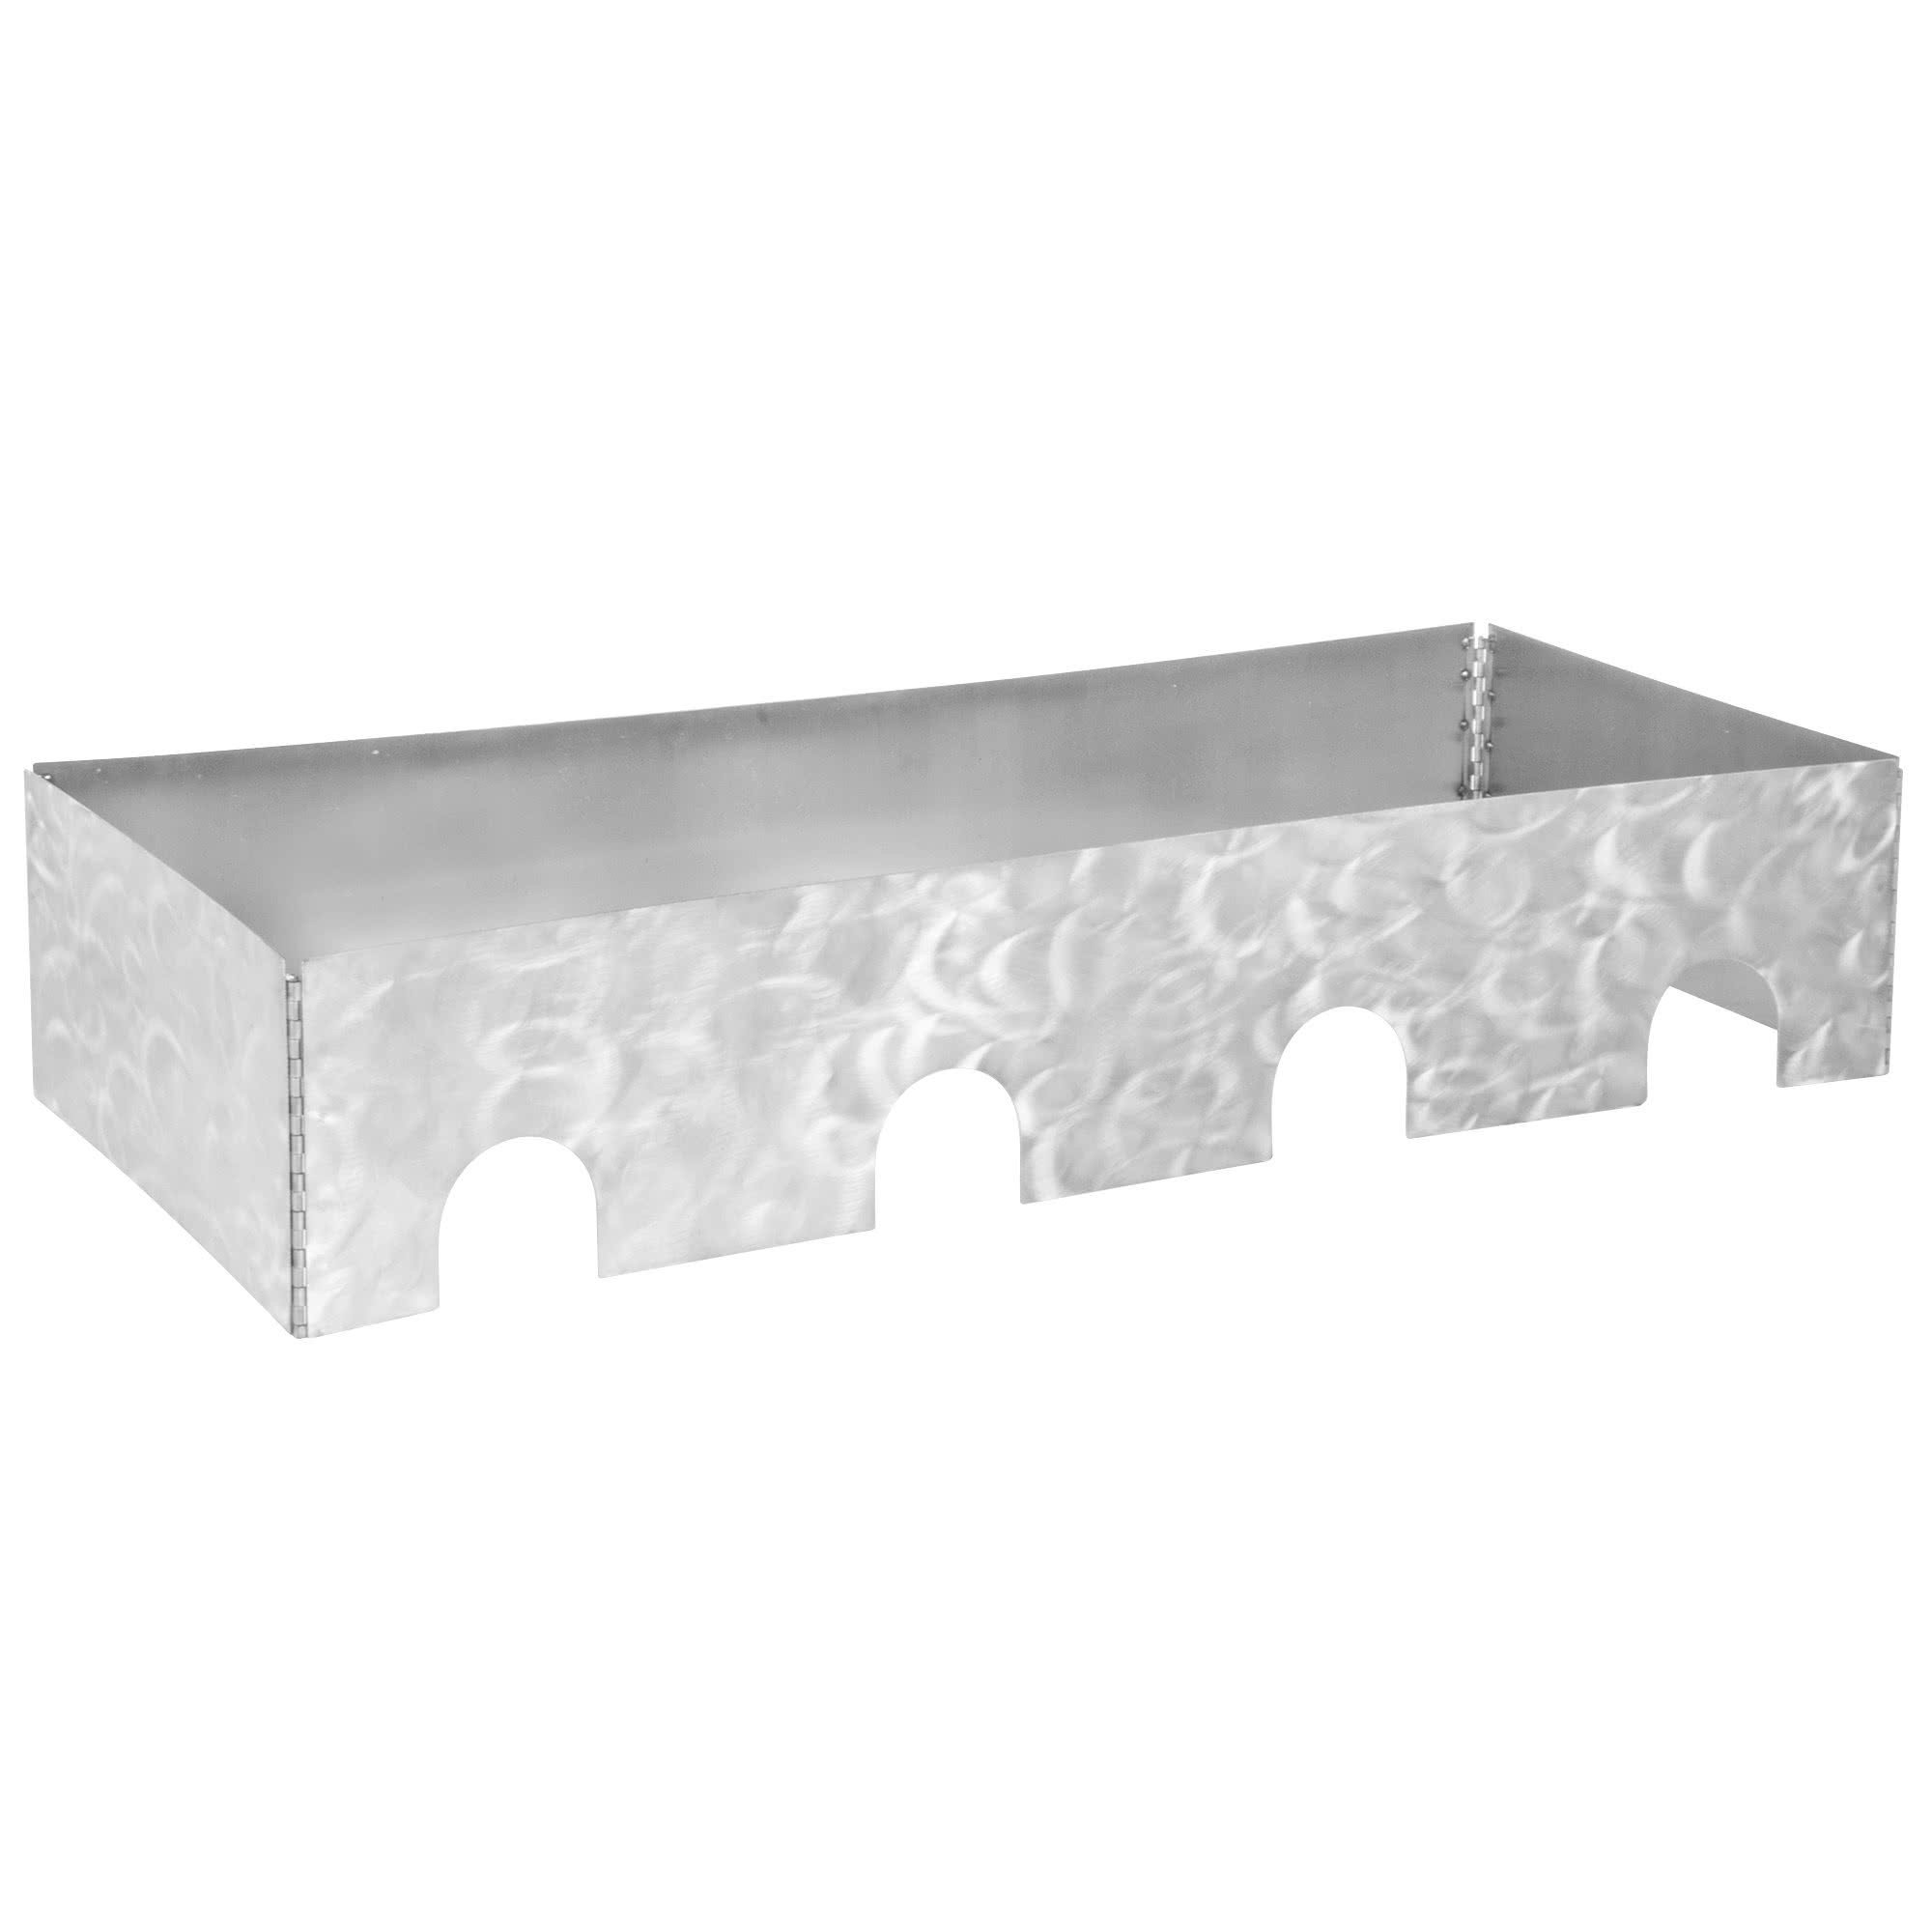 TableTop king Caterware CW604RSS 4-Well Collapsible 16 Gauge Random Swirl Stainless Steel Server - 51 1/2'' x 20 1/2'' x 10''